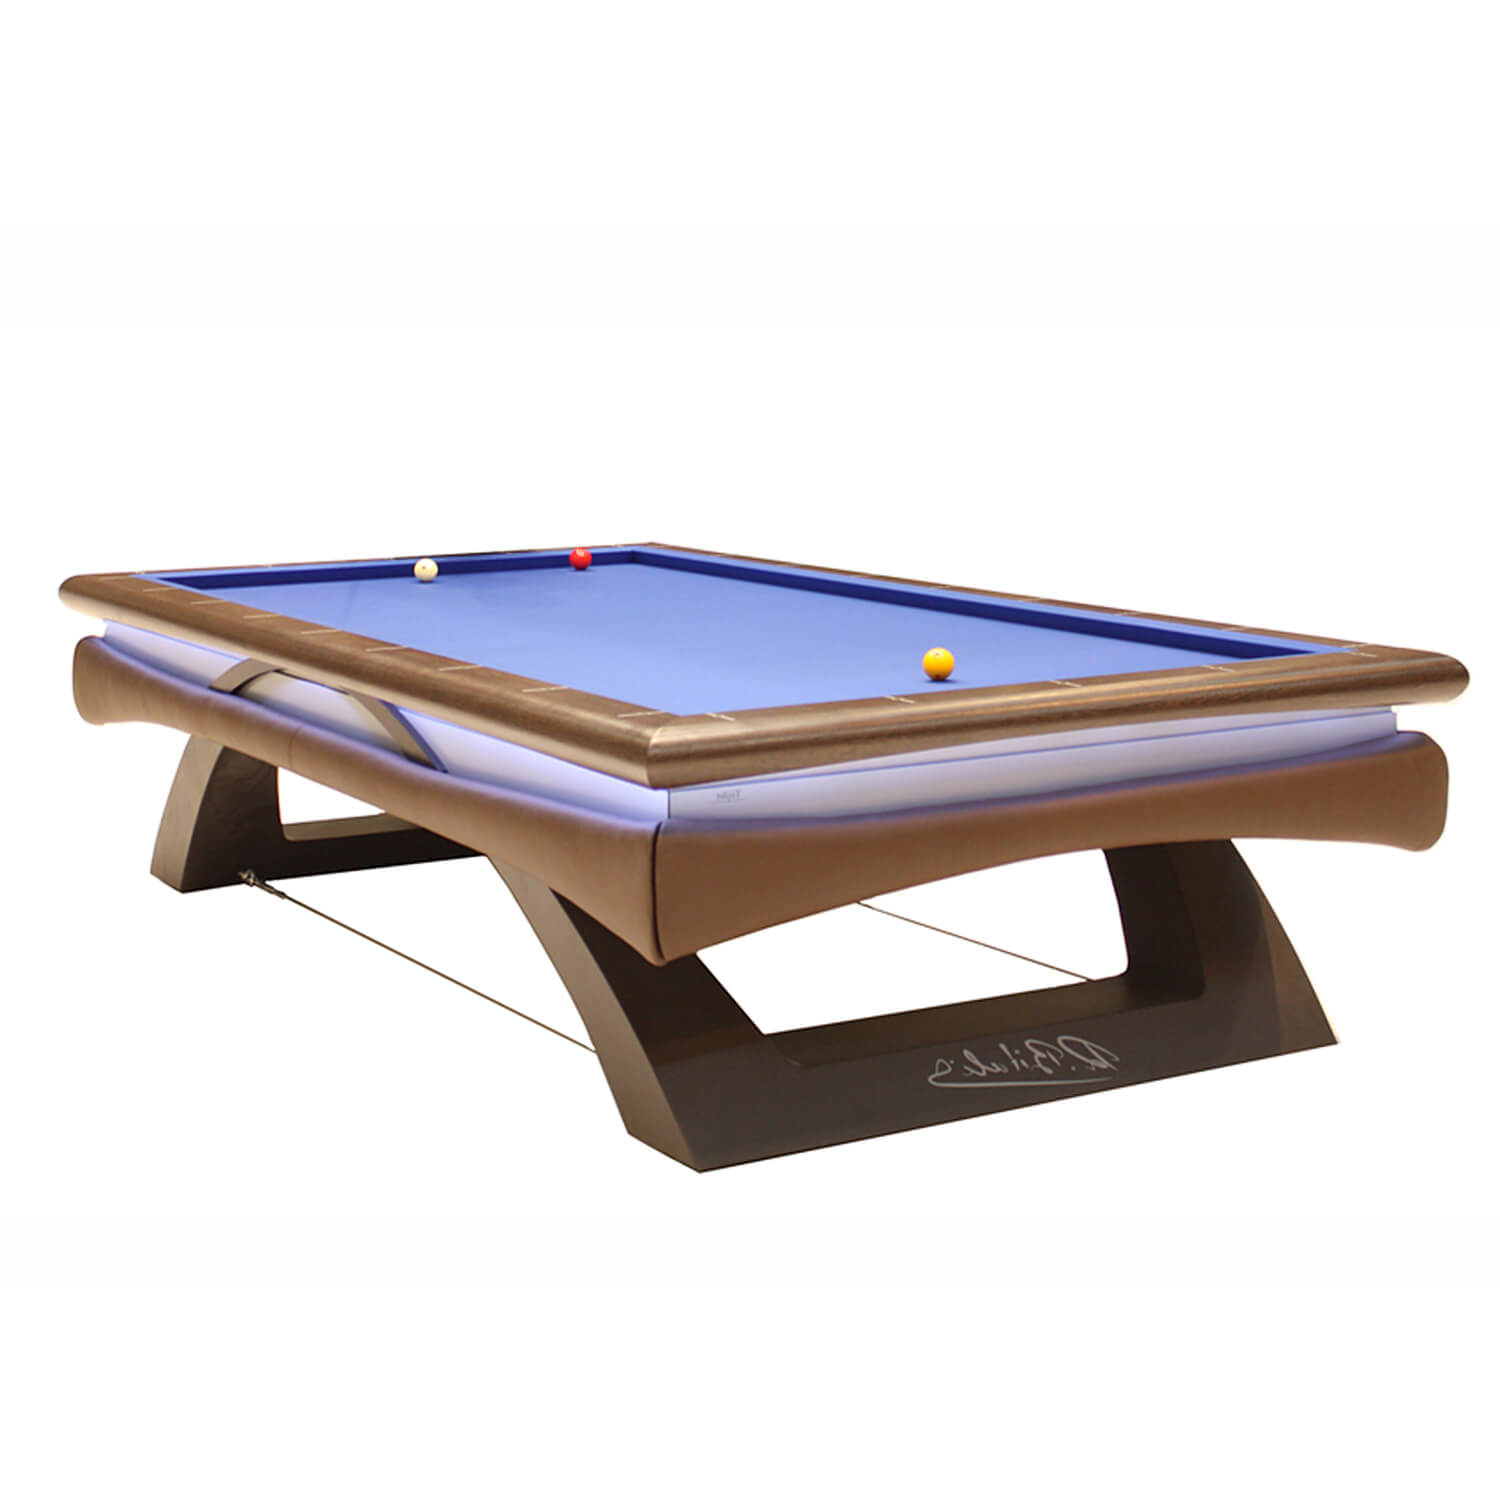 billard toulet bitalis american pool table 9 ft liberty games. Black Bedroom Furniture Sets. Home Design Ideas